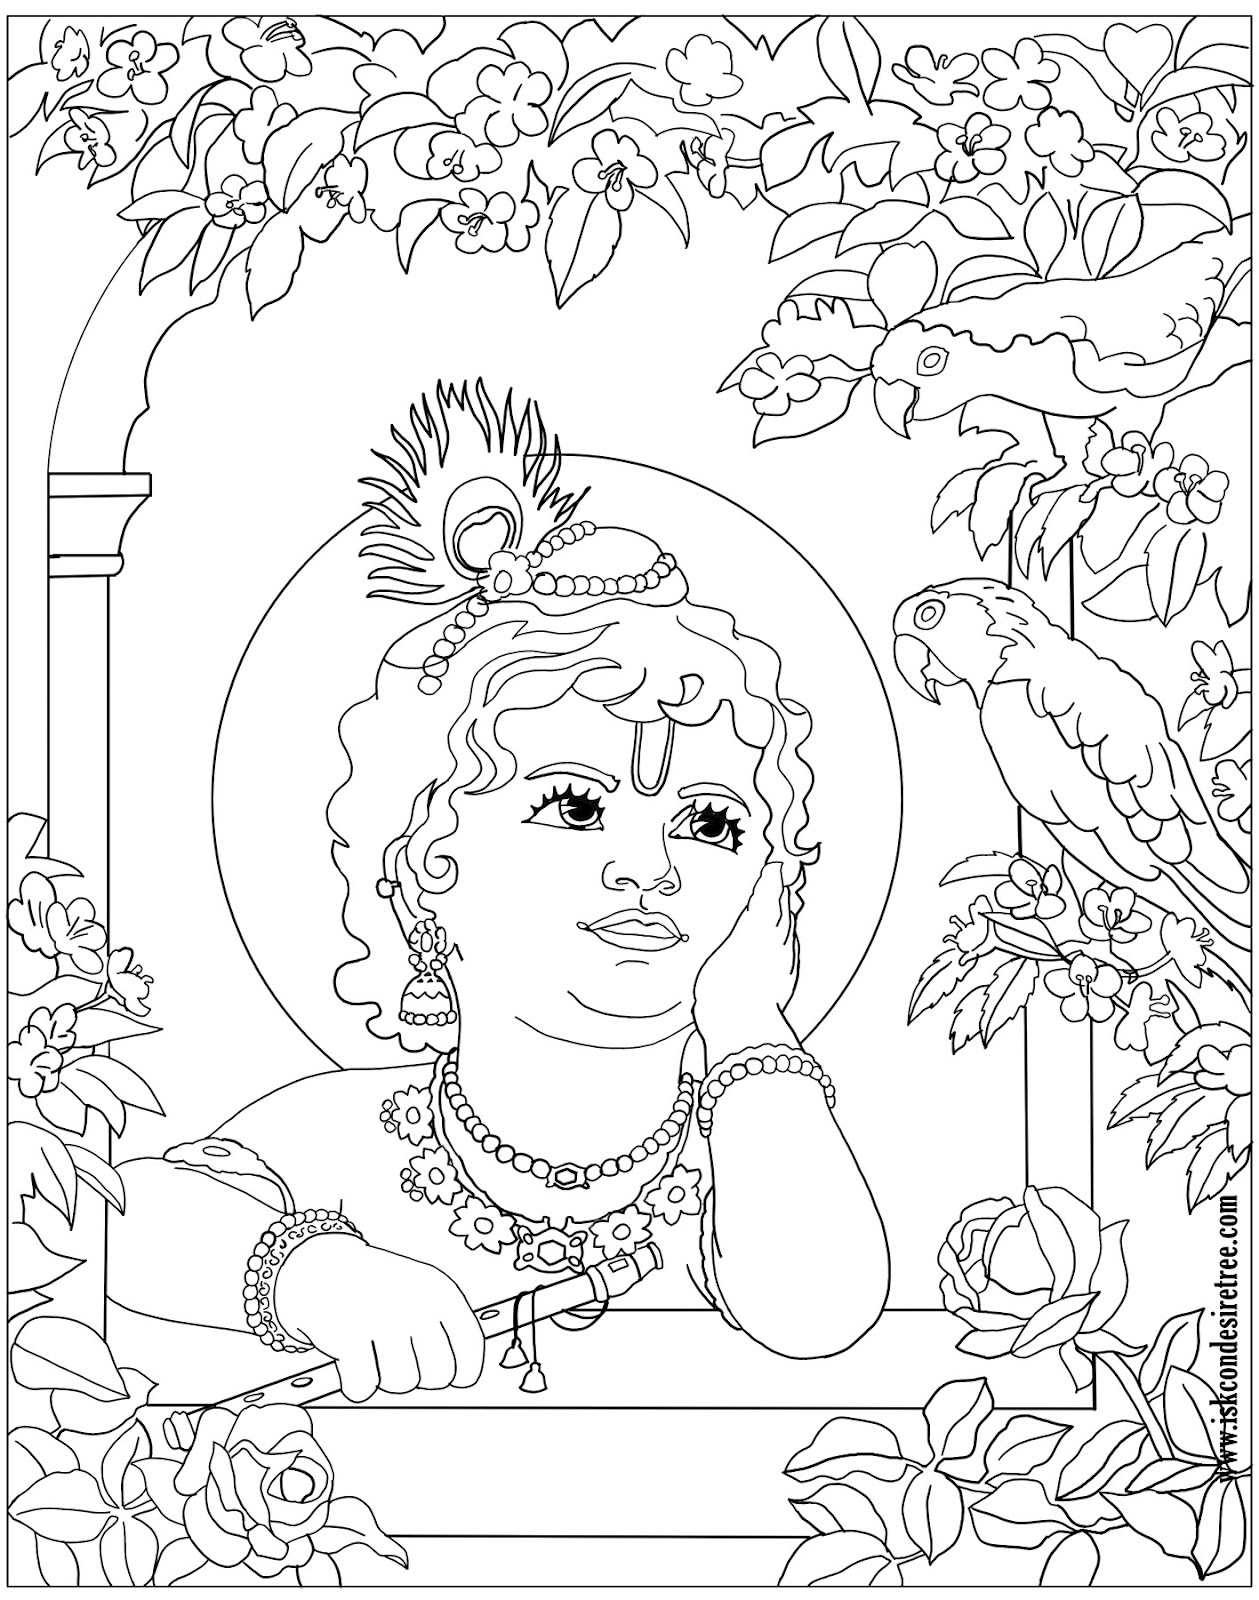 Colouring pages holi - Coloring Pages Holi Coloring Pages Holi Festival Pictures Drawing And Coloring Top Images 2017 Httpswww Happyholiwishes